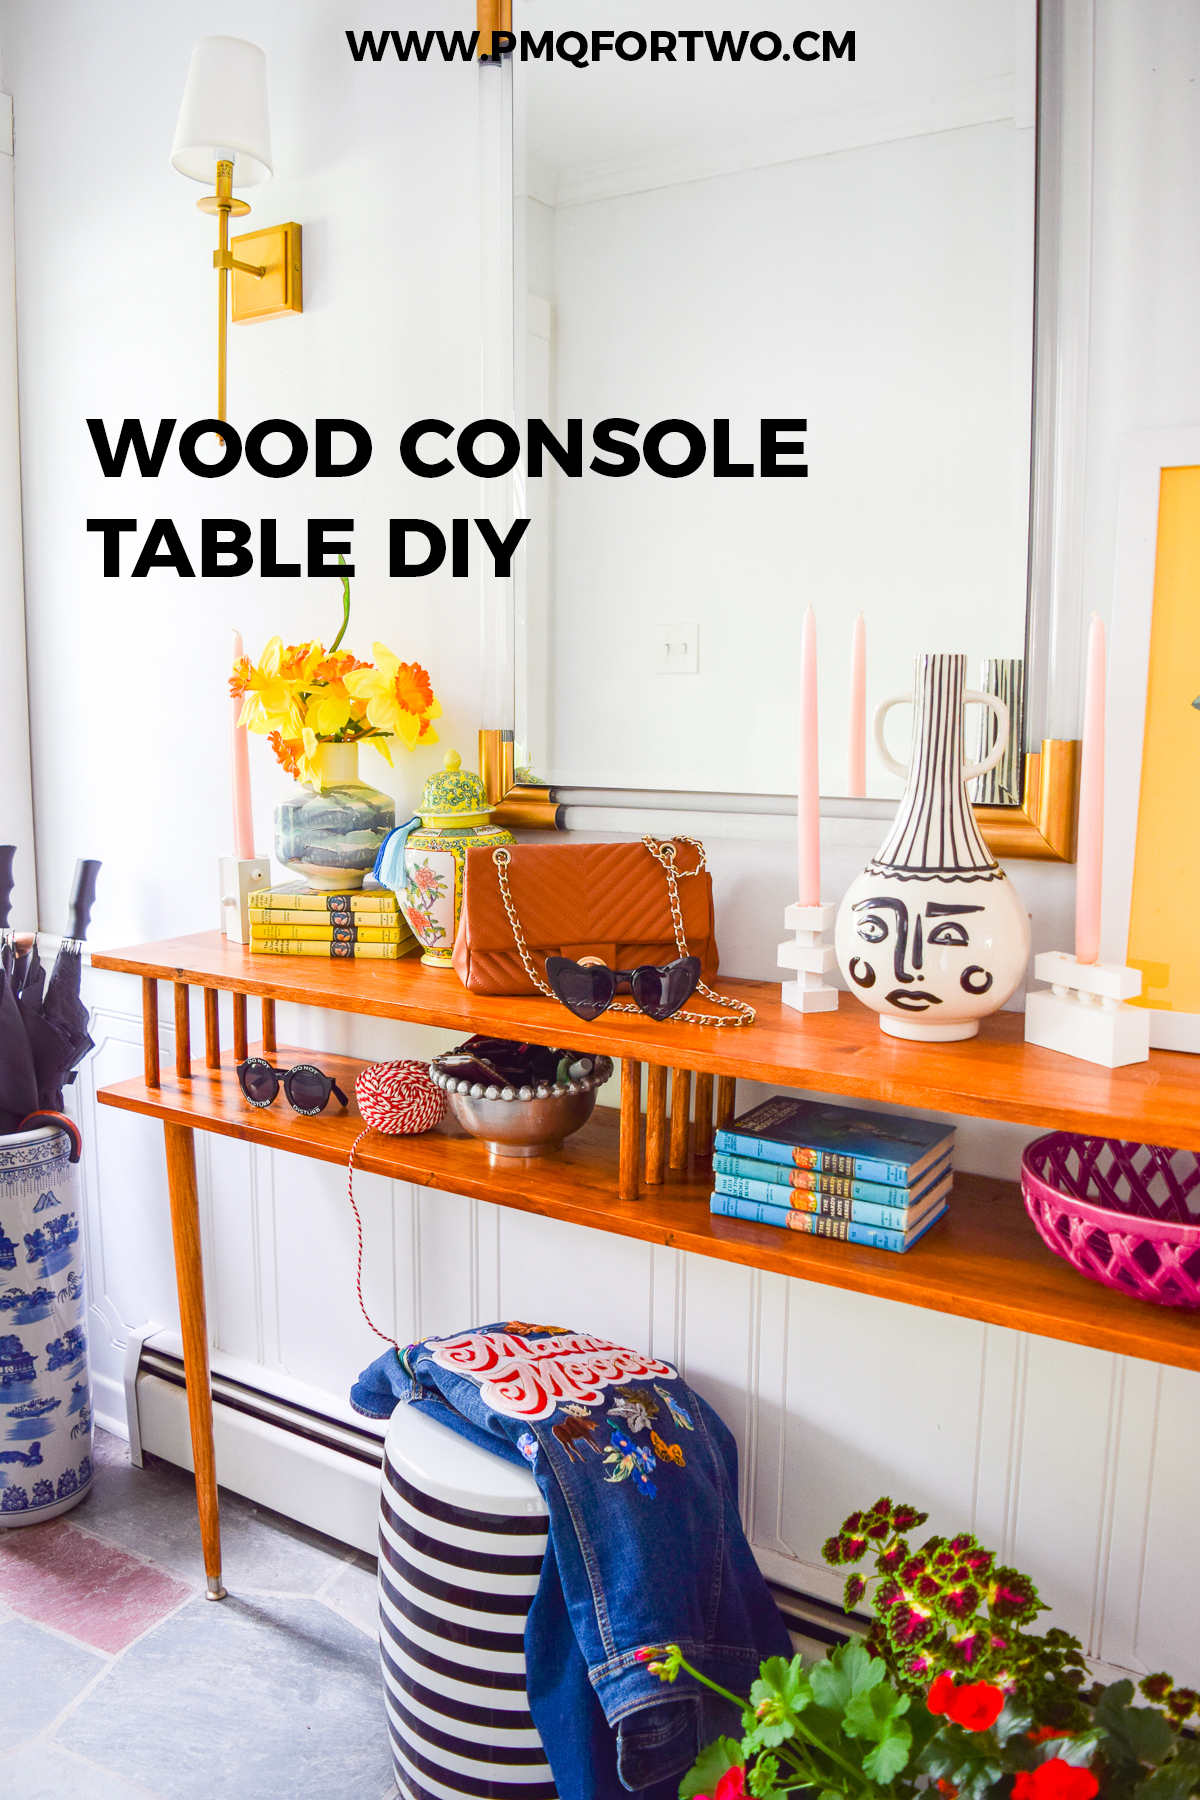 A wood console table DIY you can make without screws! Get the sleek mid century modern look using pine boards and dowels from the Home Depot. Grab the plans on the blog!